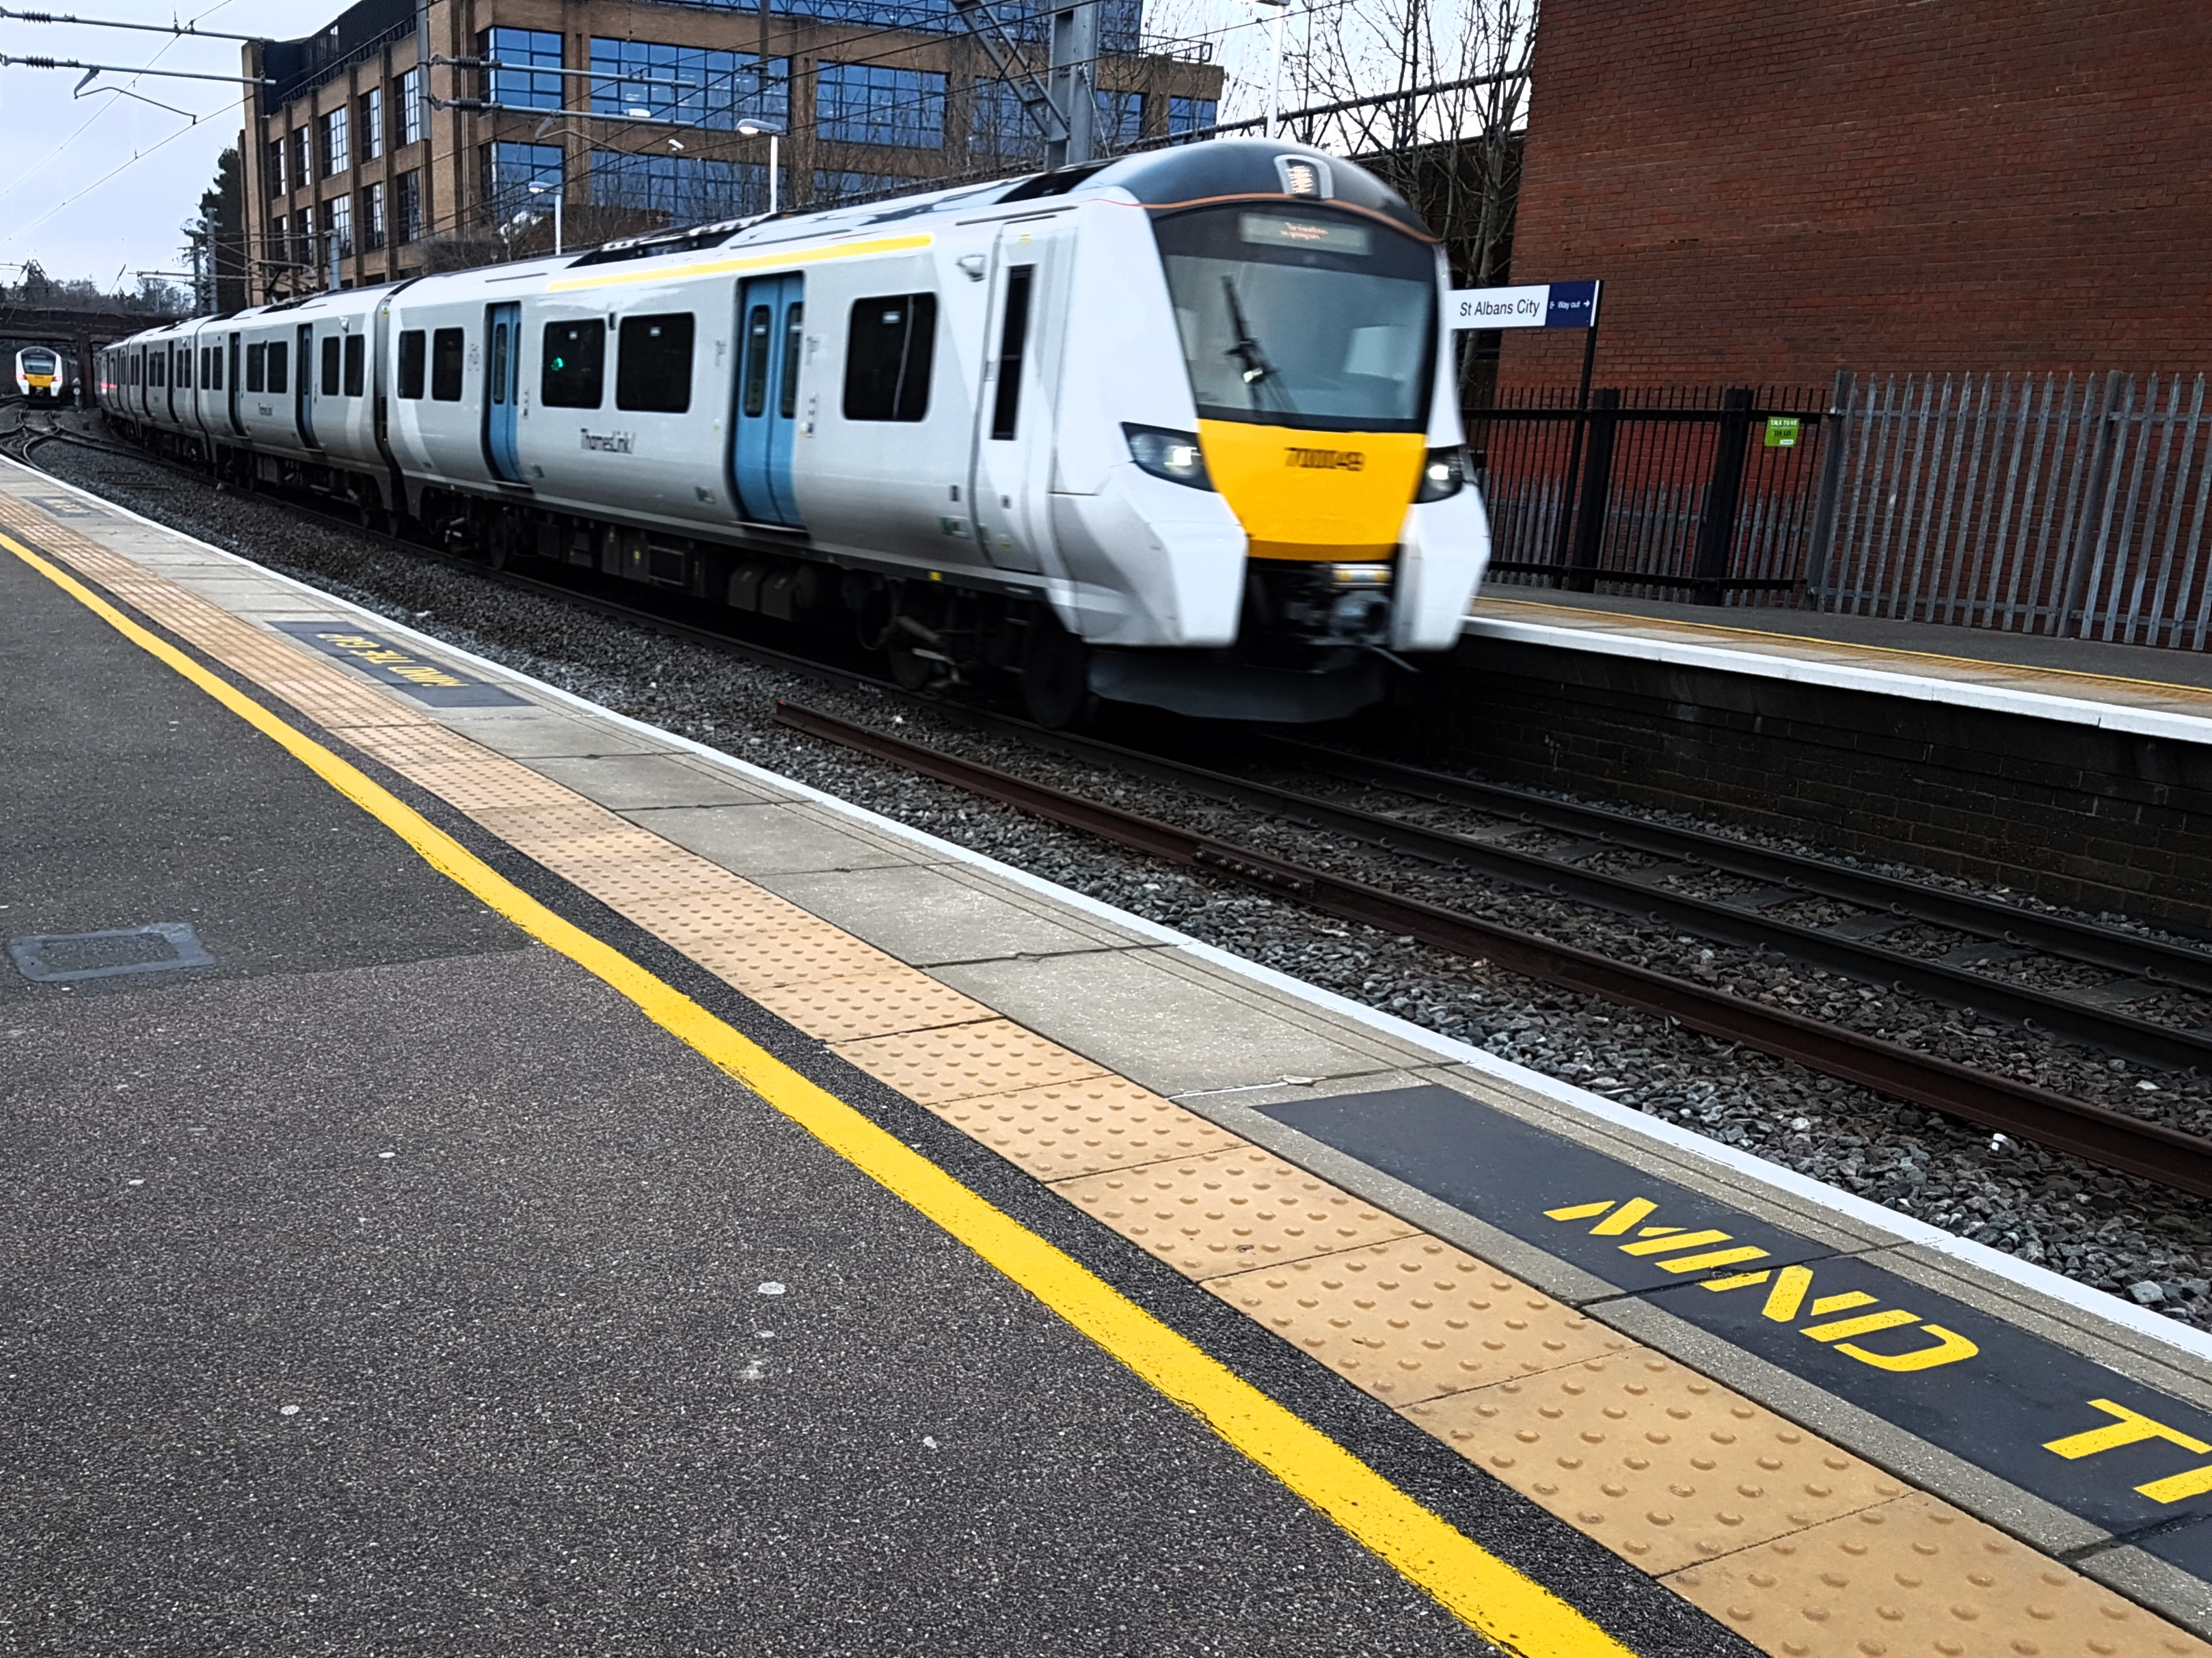 a Thameslink train arriving into a station